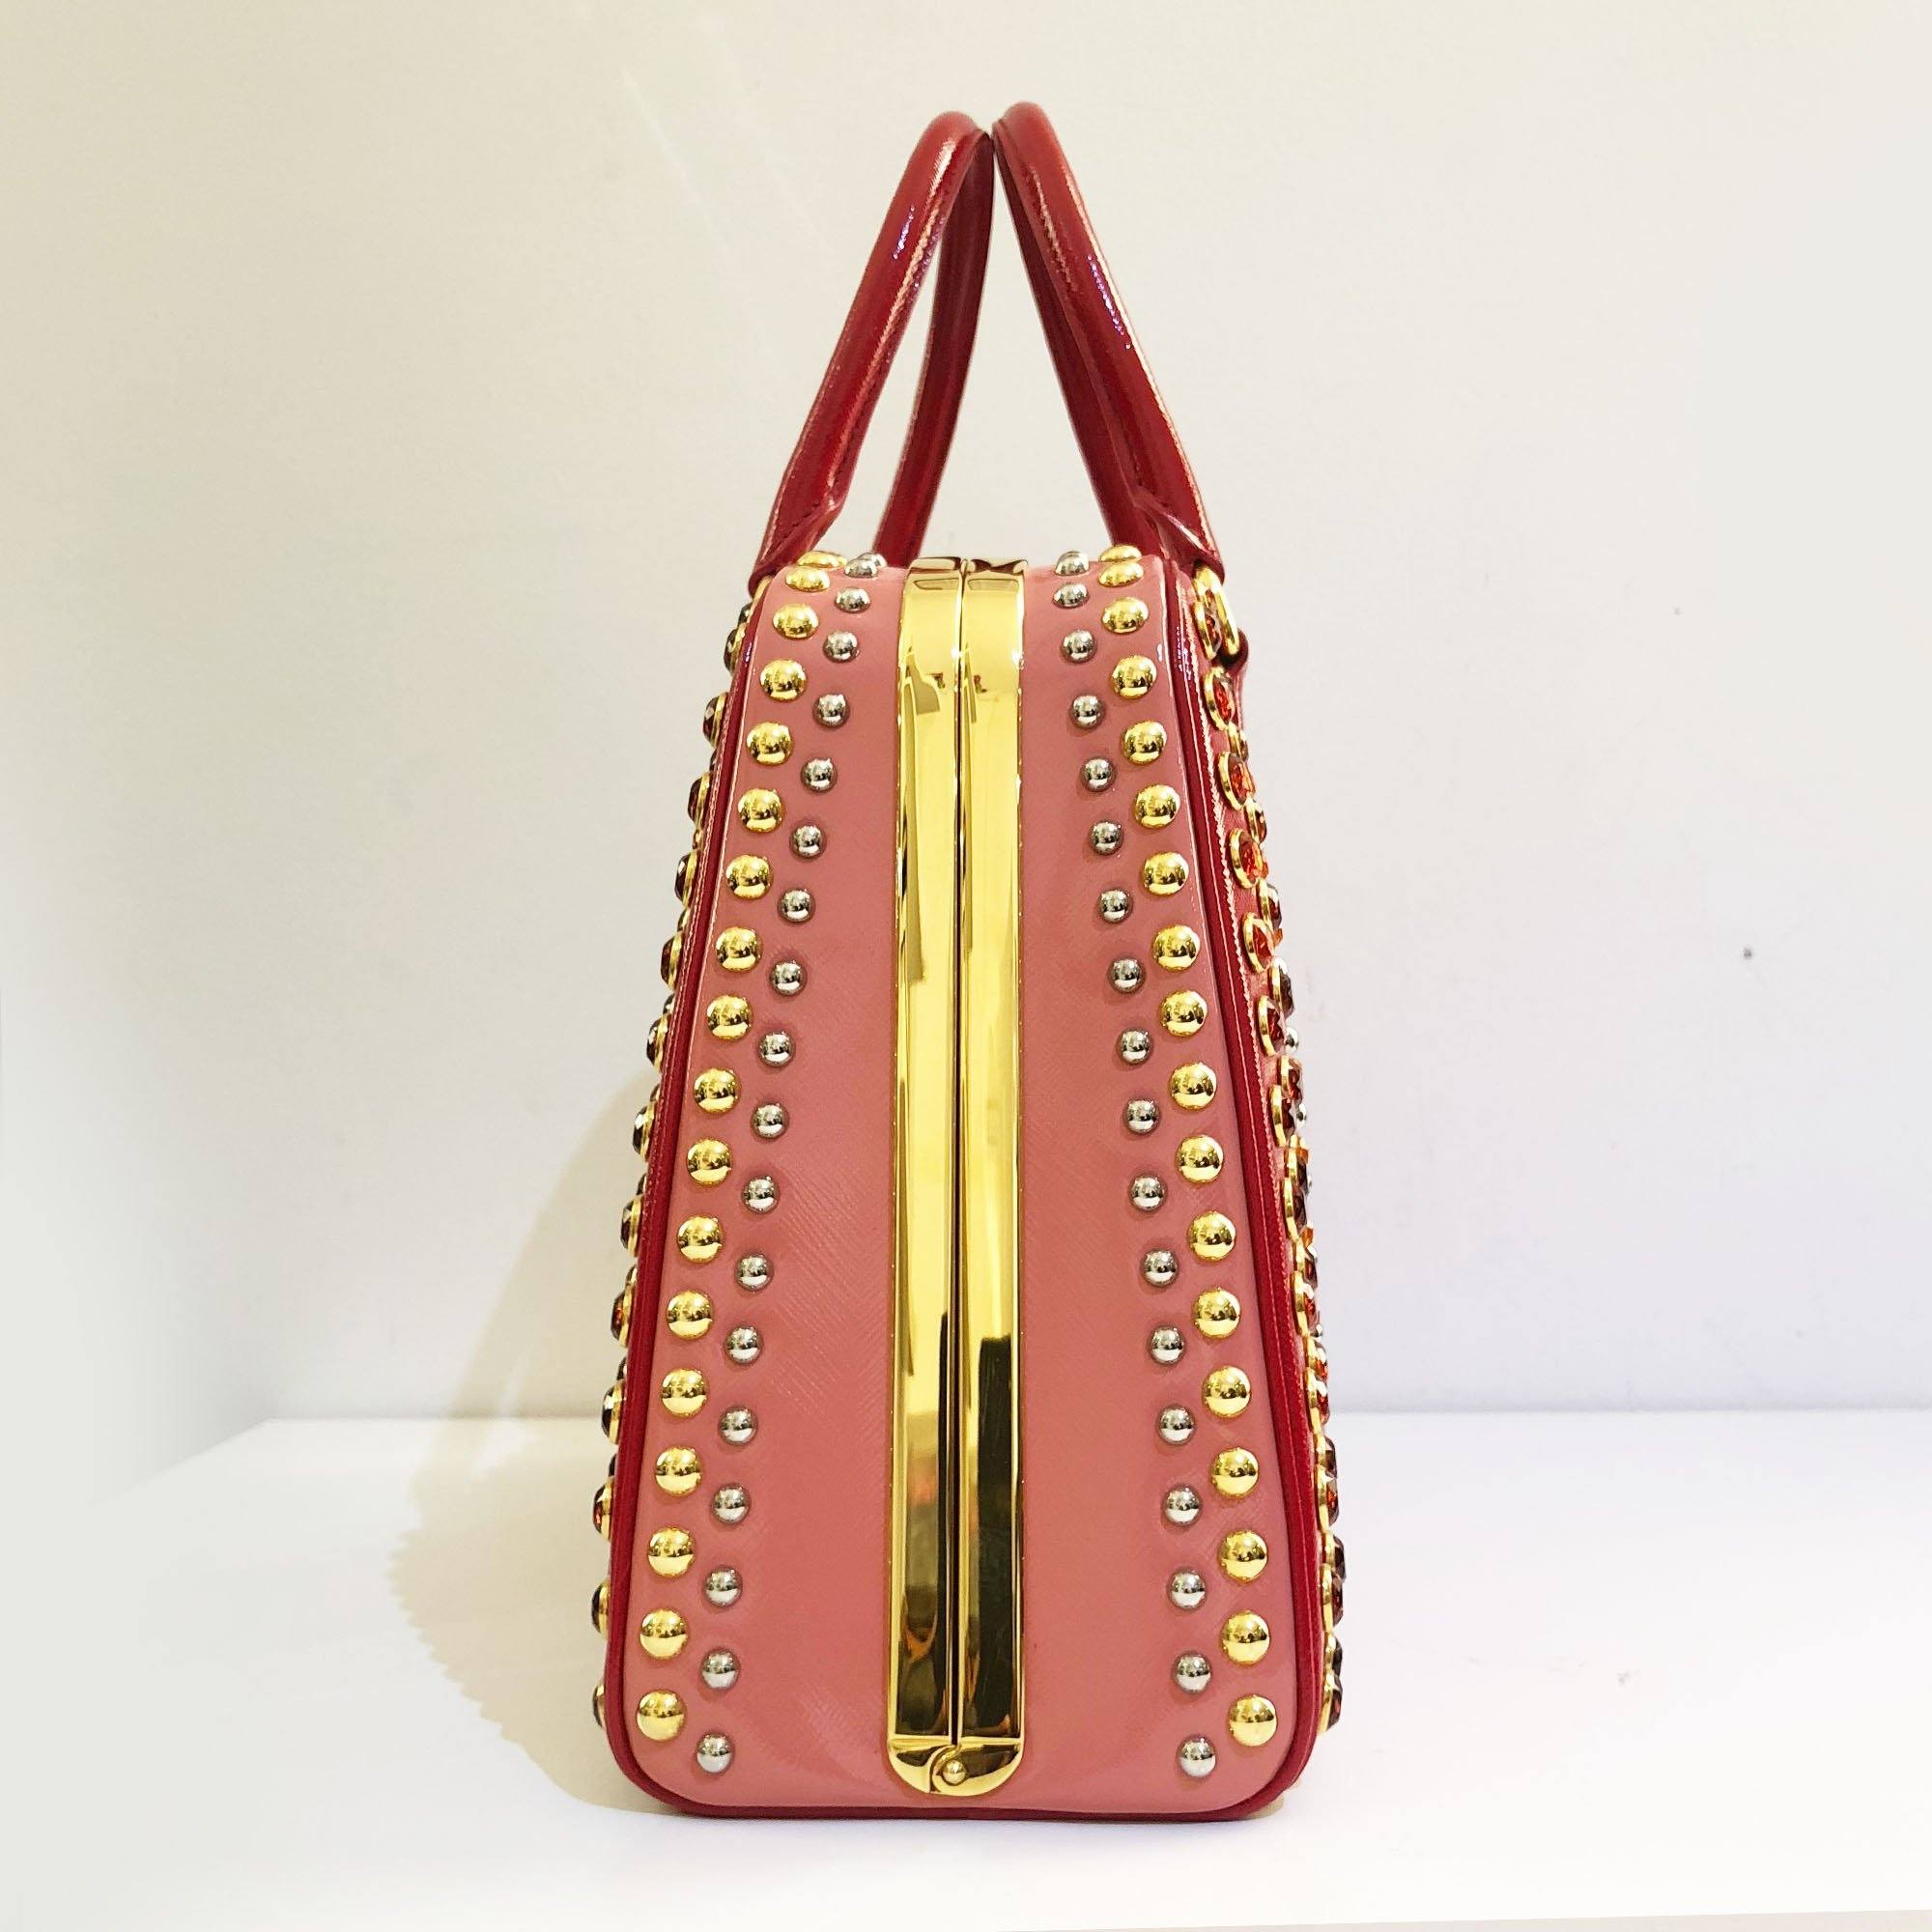 Prada Red Jewel Saffiano Vernic Pyramid Bag